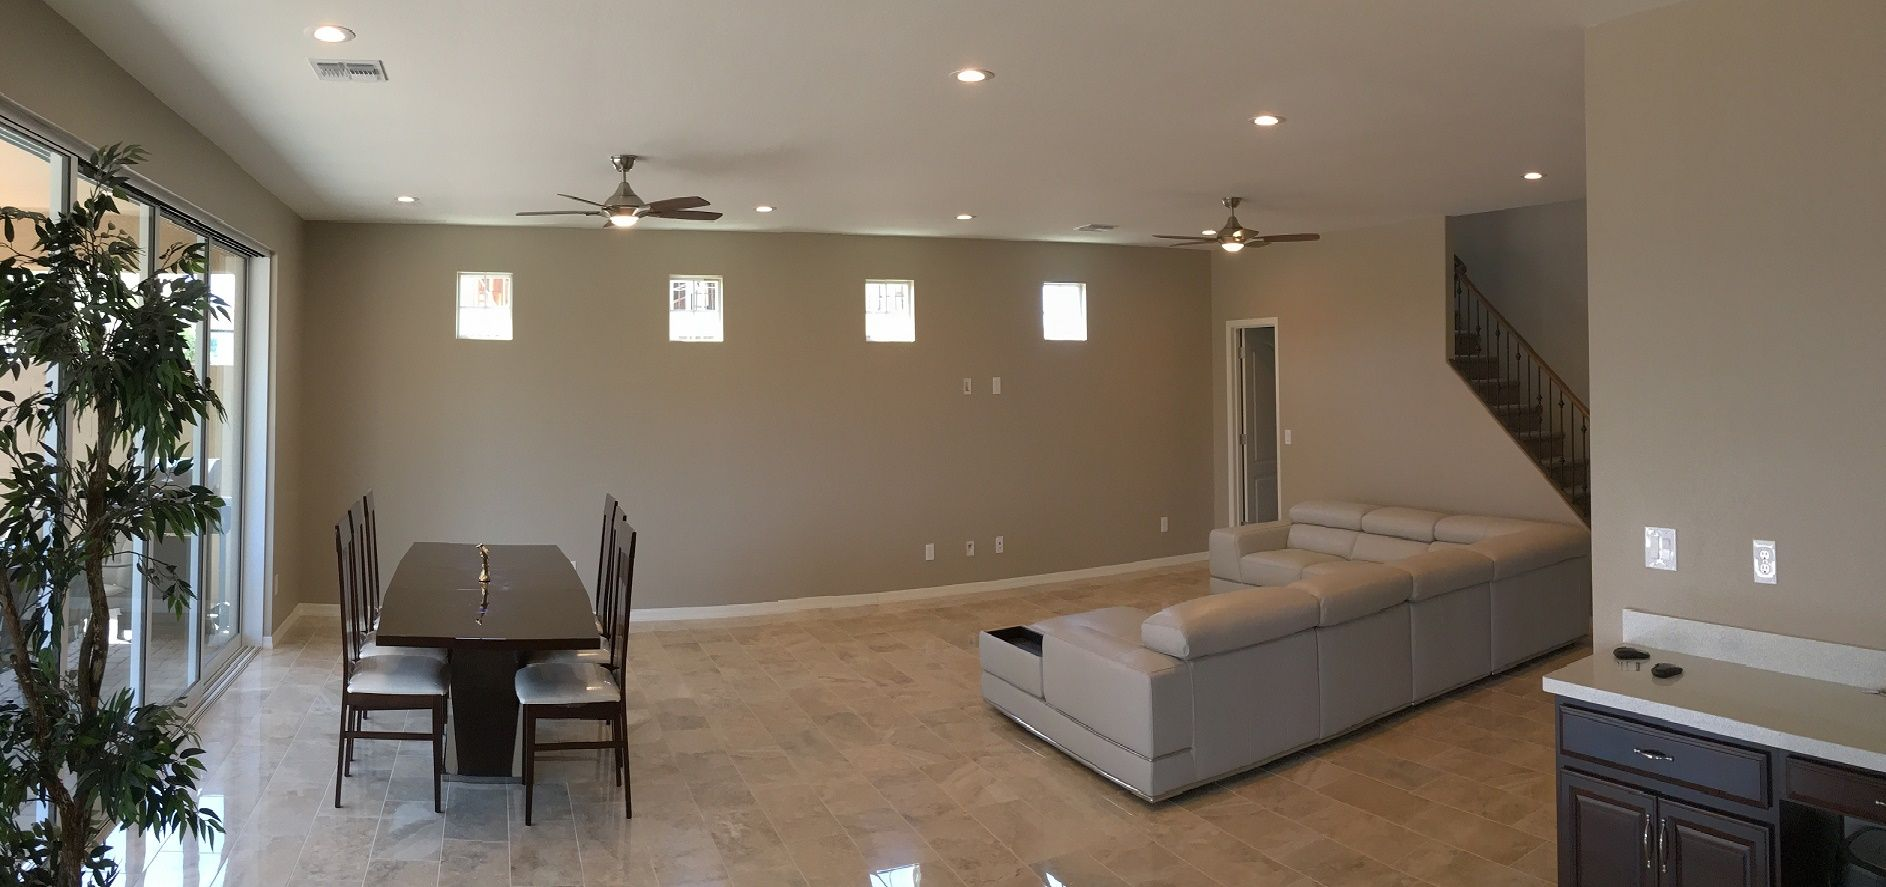 Recessed Lighting Az Recessed Lighting Installation Of Led Lights And